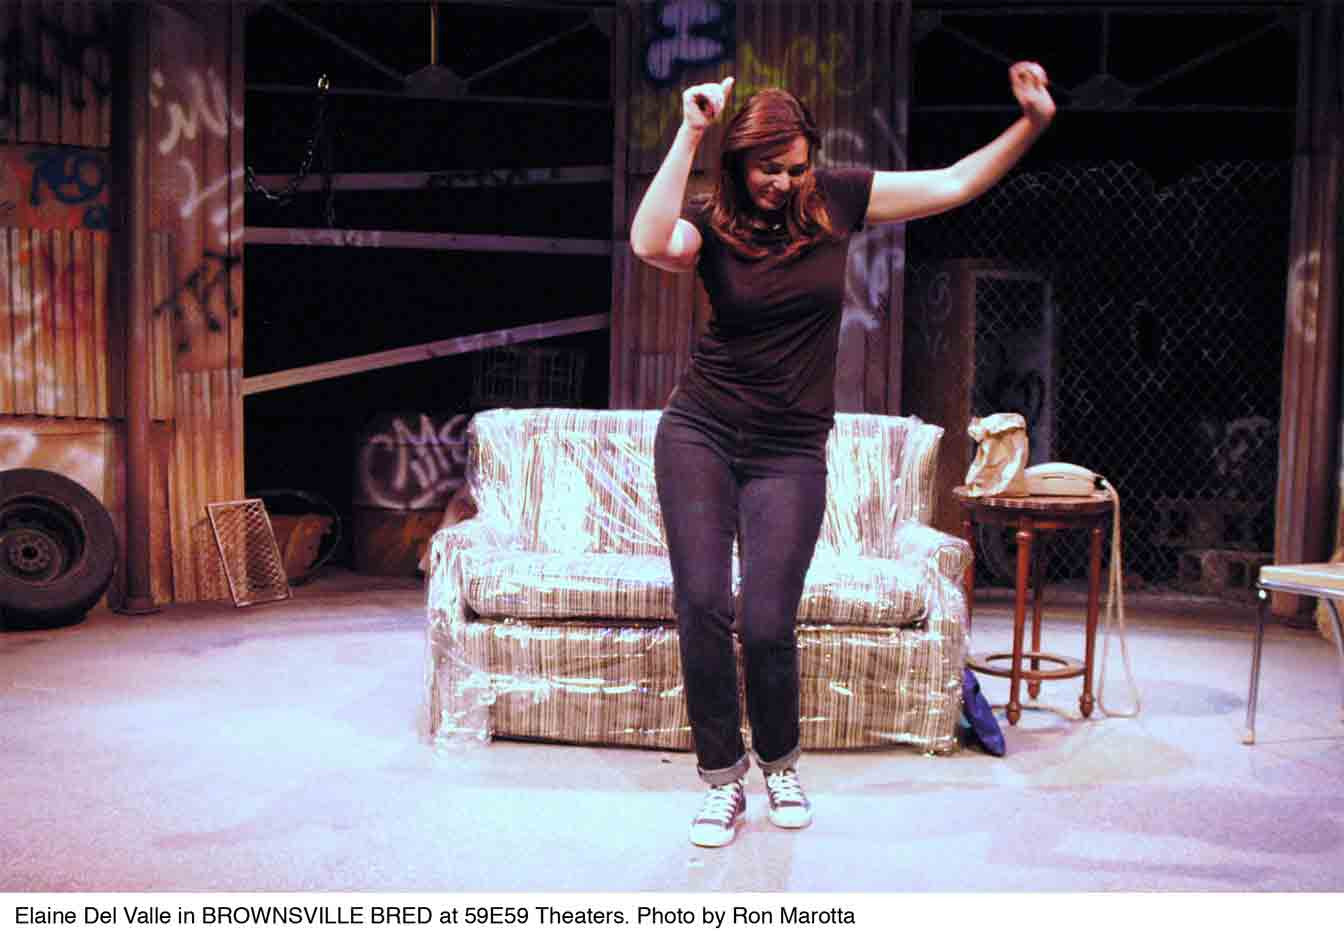 Brownsville Bred, Playwright, Elaine Del Valle